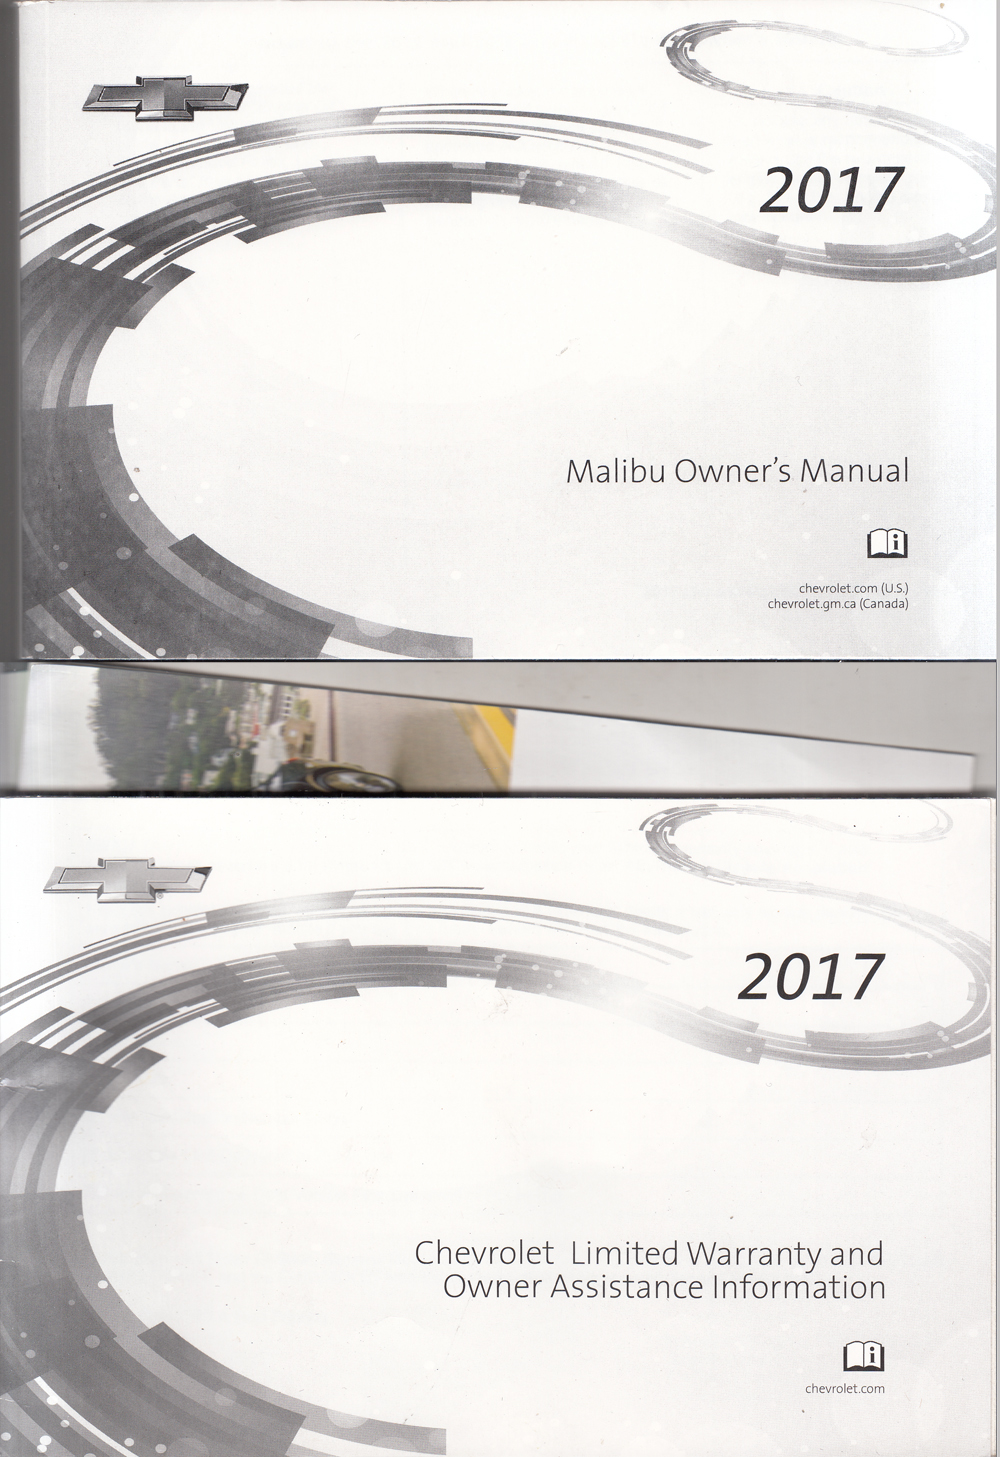 2017 Chevrolet Malibu Owners Manual with Pamphlets Original